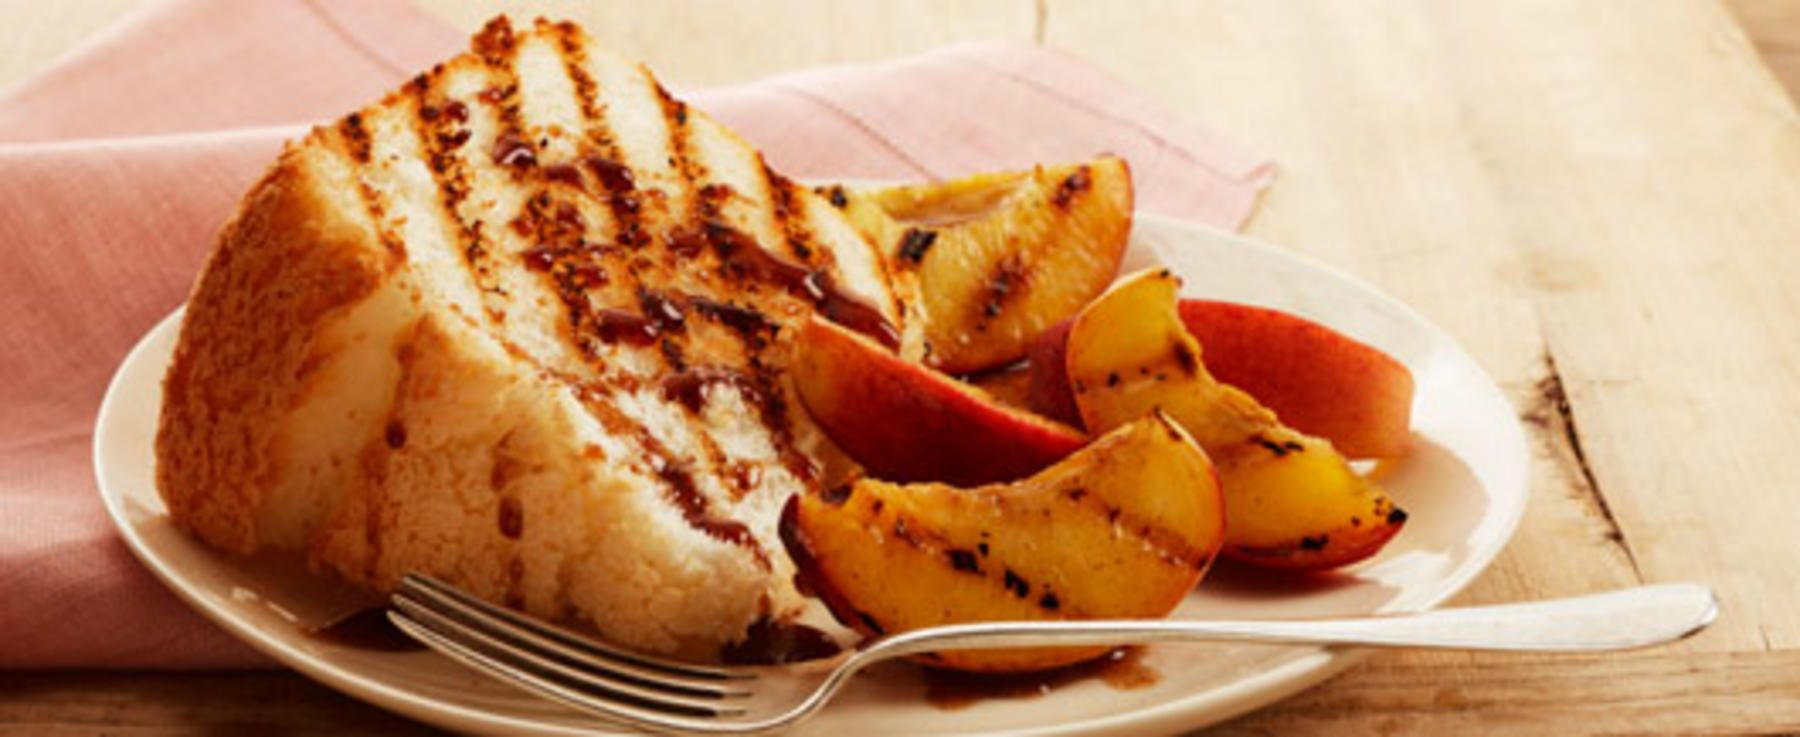 Grilled Peaches and Angel Food Cake With Red-Wine Sauce recommend